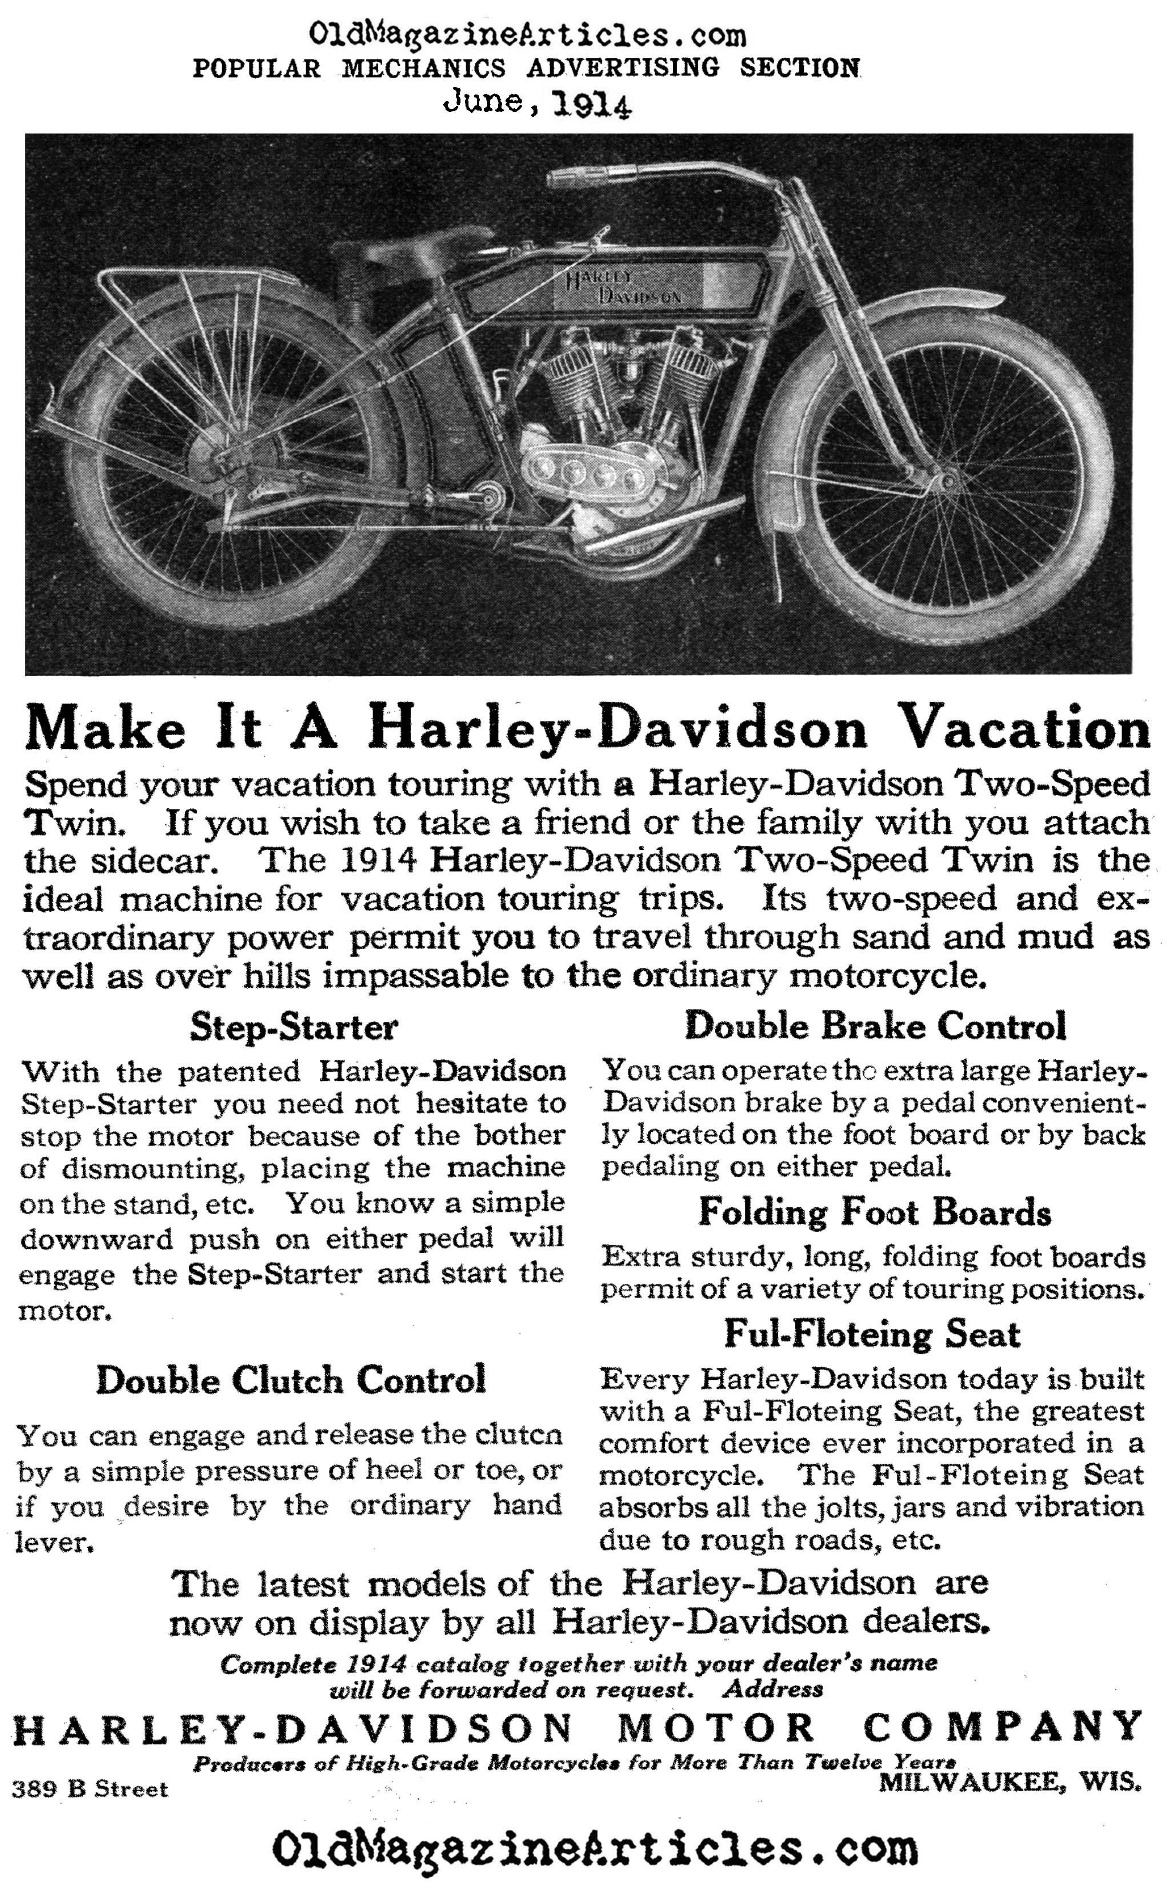 A New Kind of Motorcycle (Magazine Advertisement, 1914)